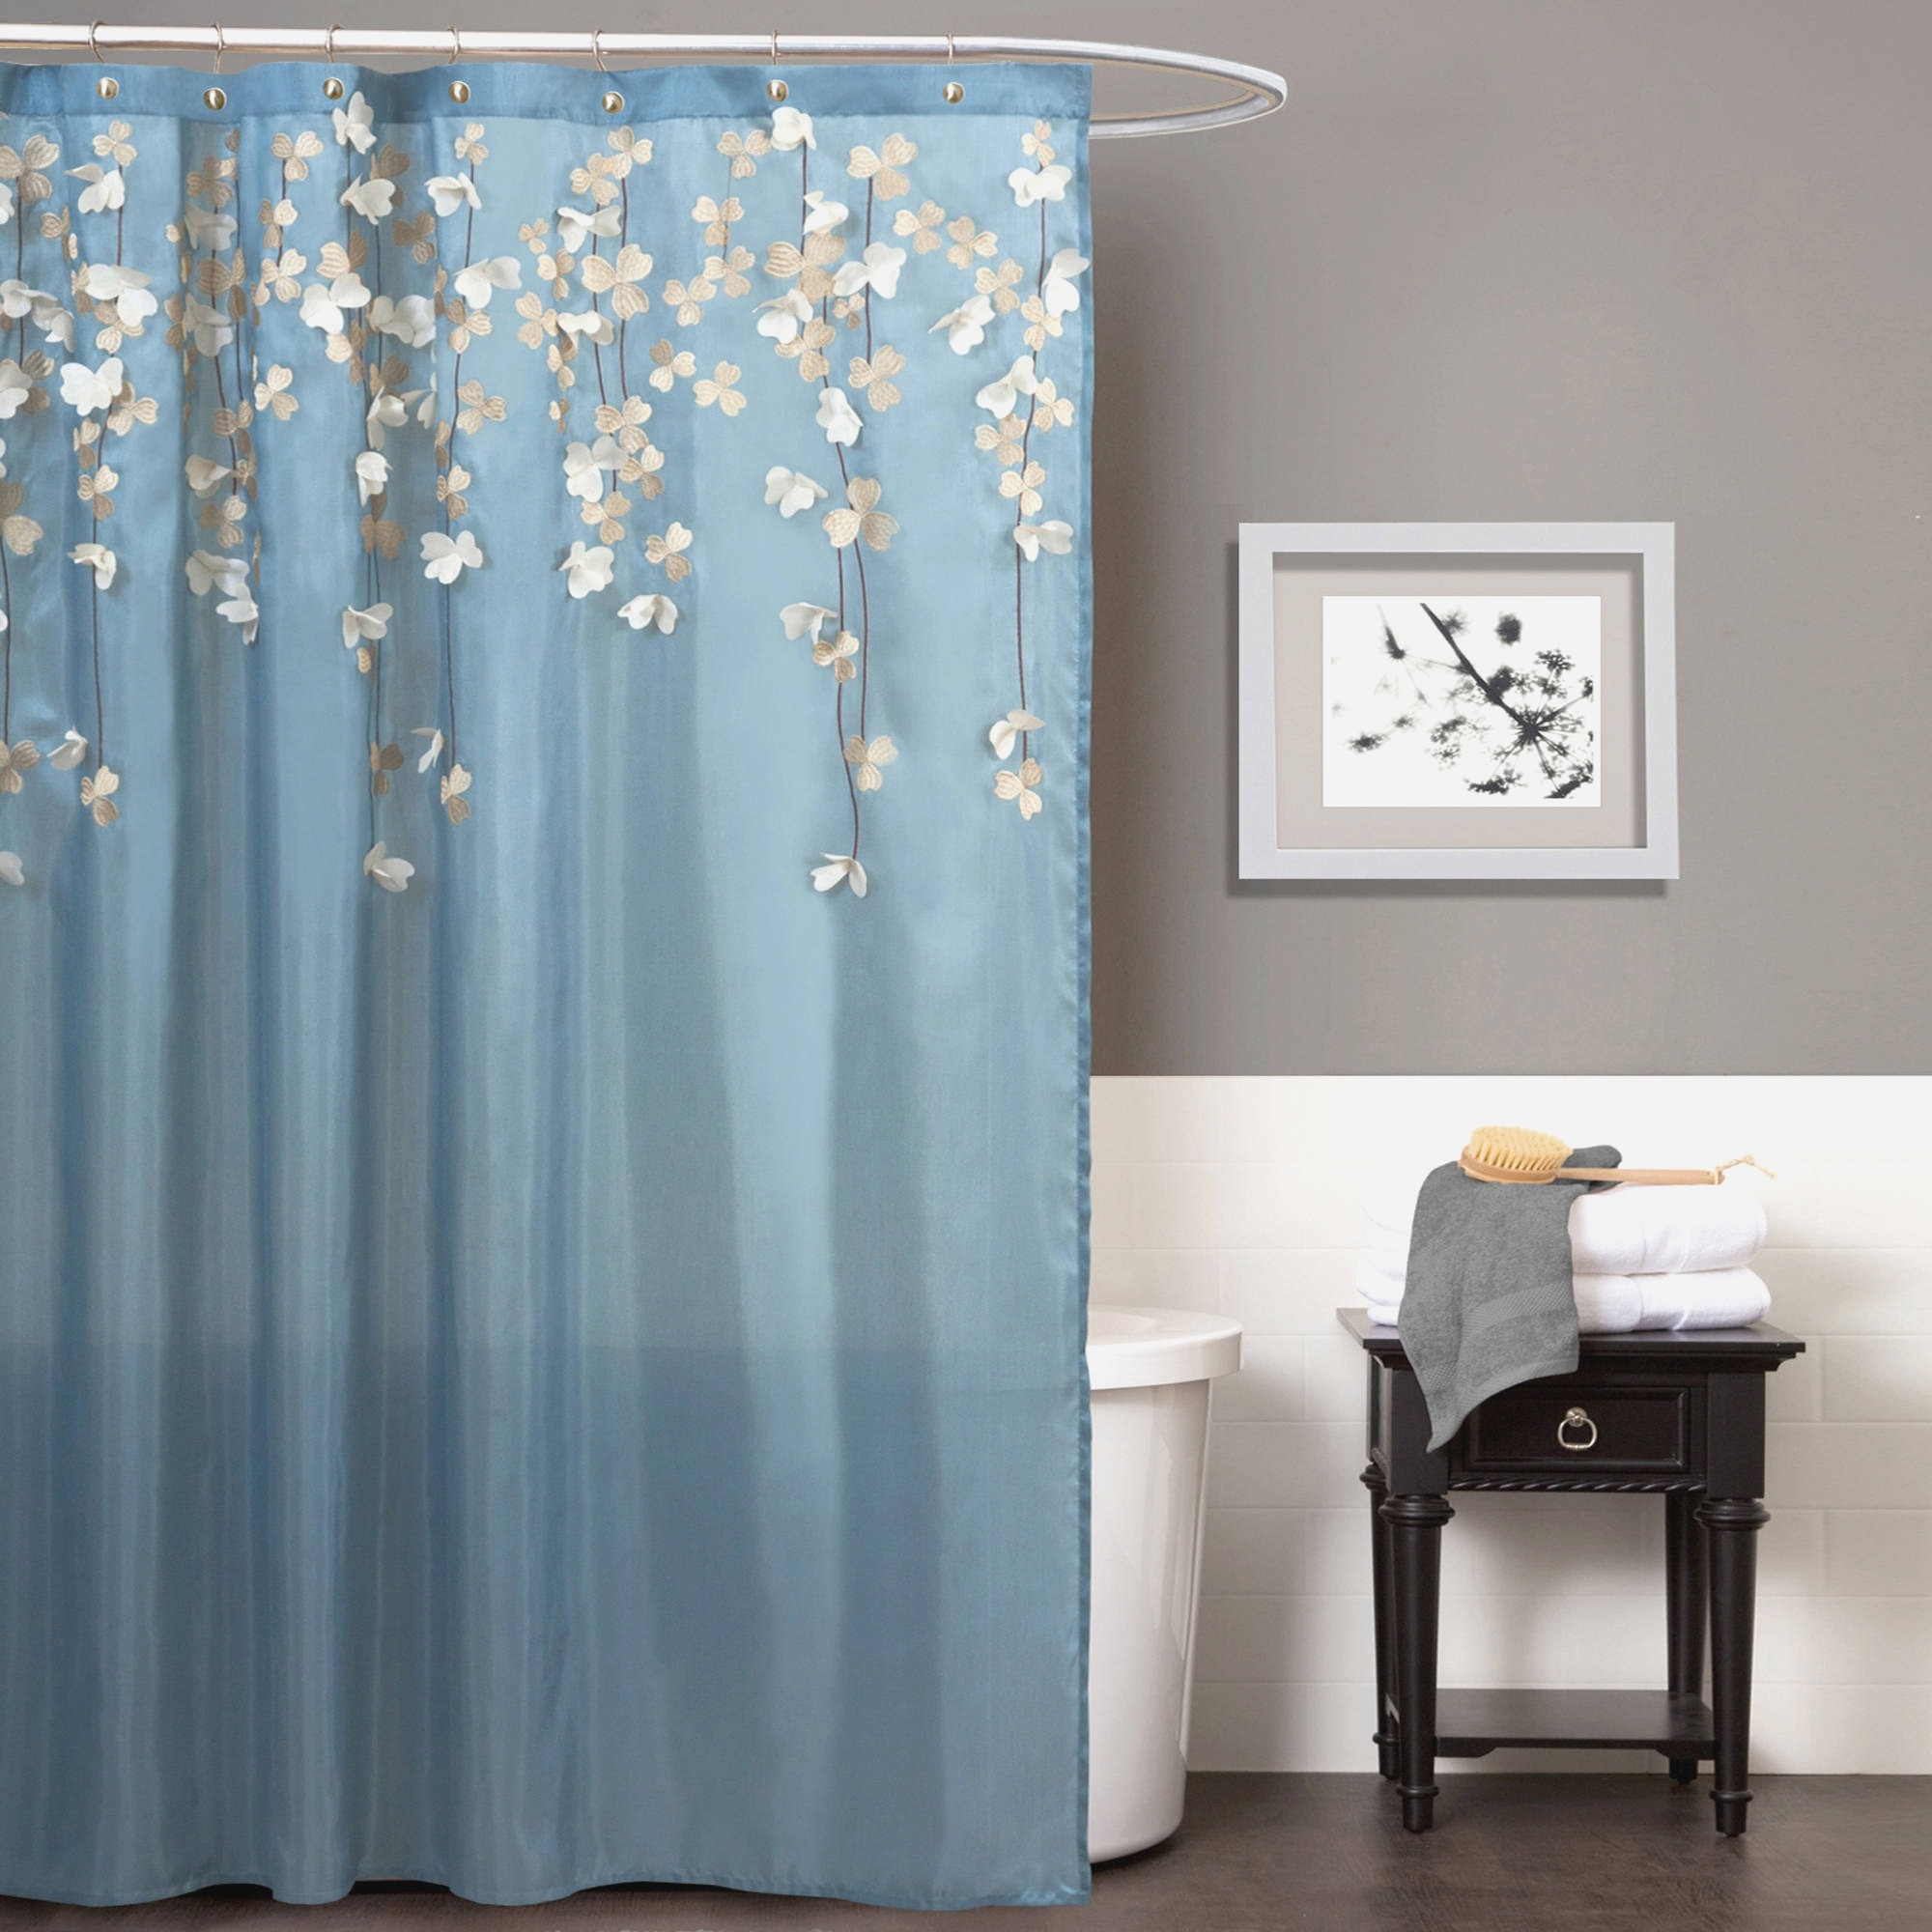 Daisy Shower Curtain Rings • Shower Curtains Ideas